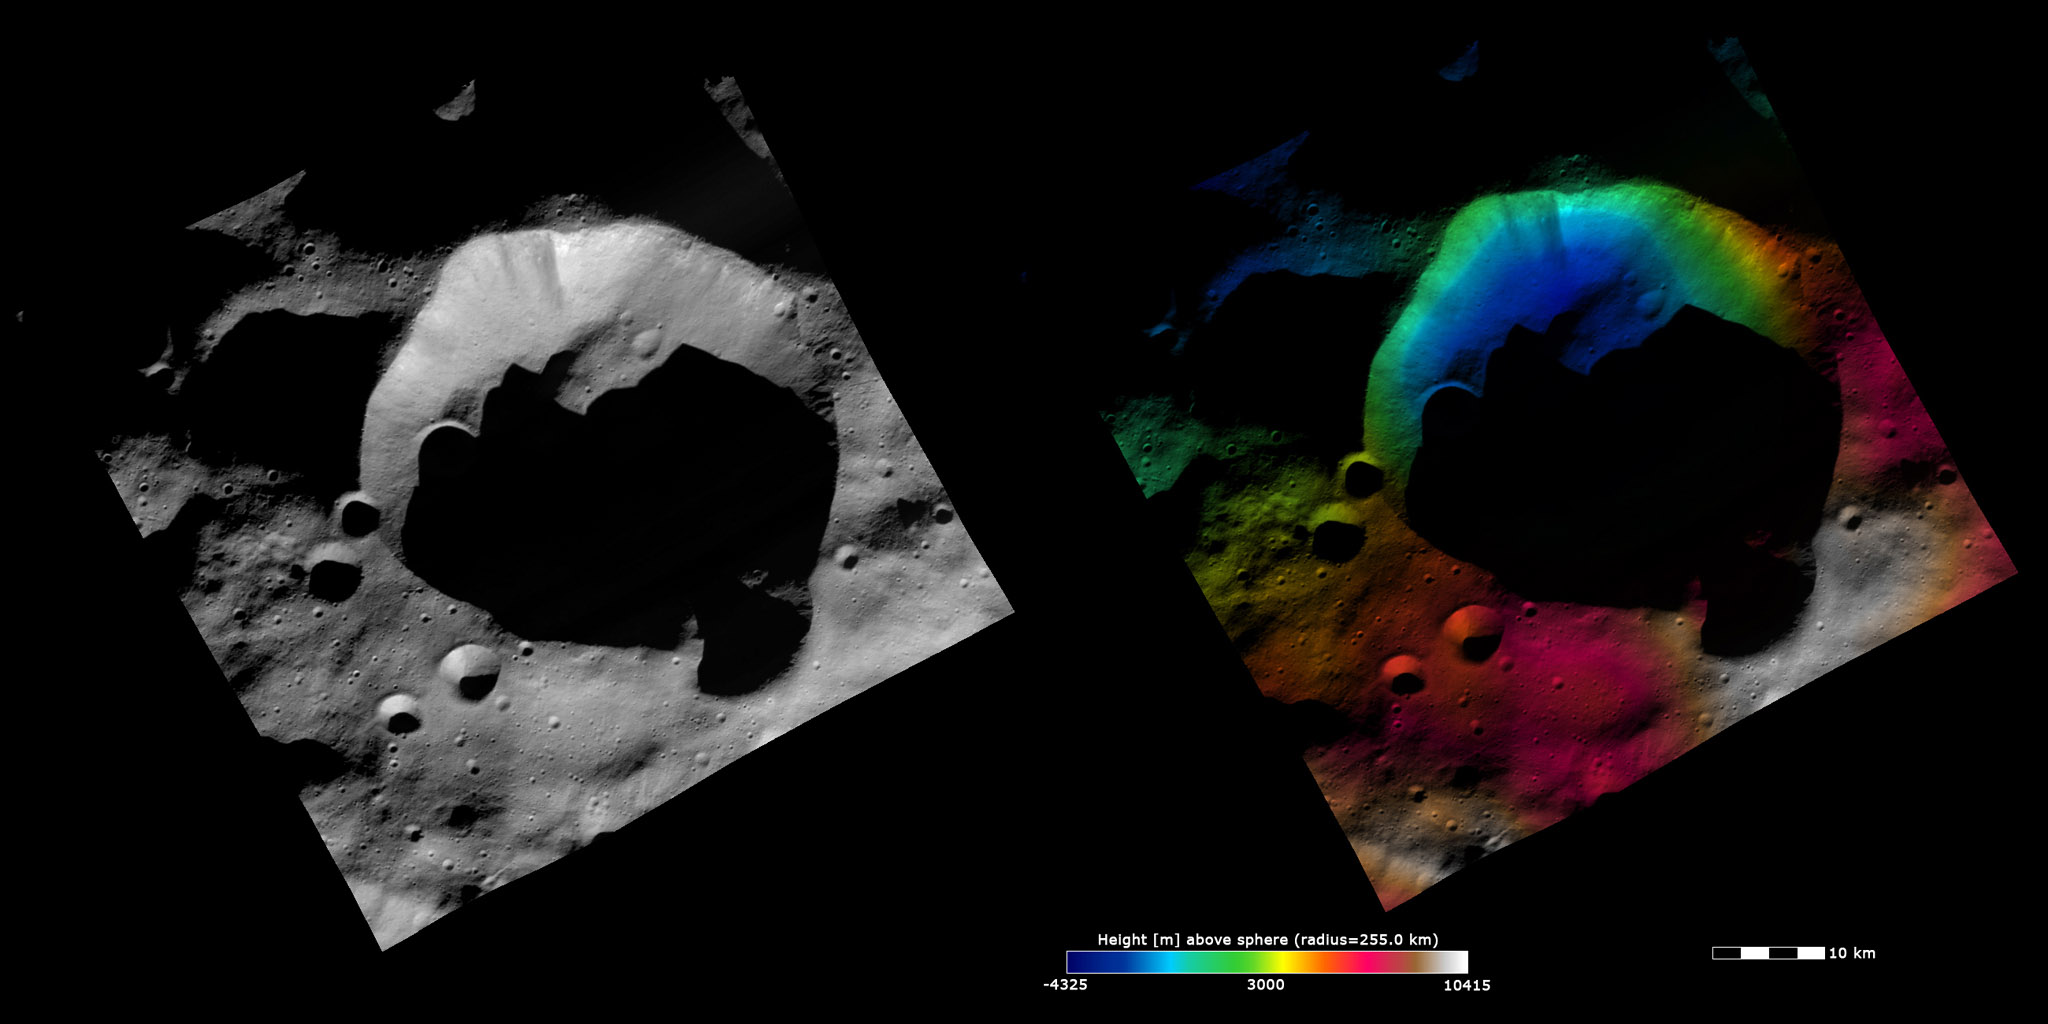 Topography and Albedo Image of Bellicia Crater